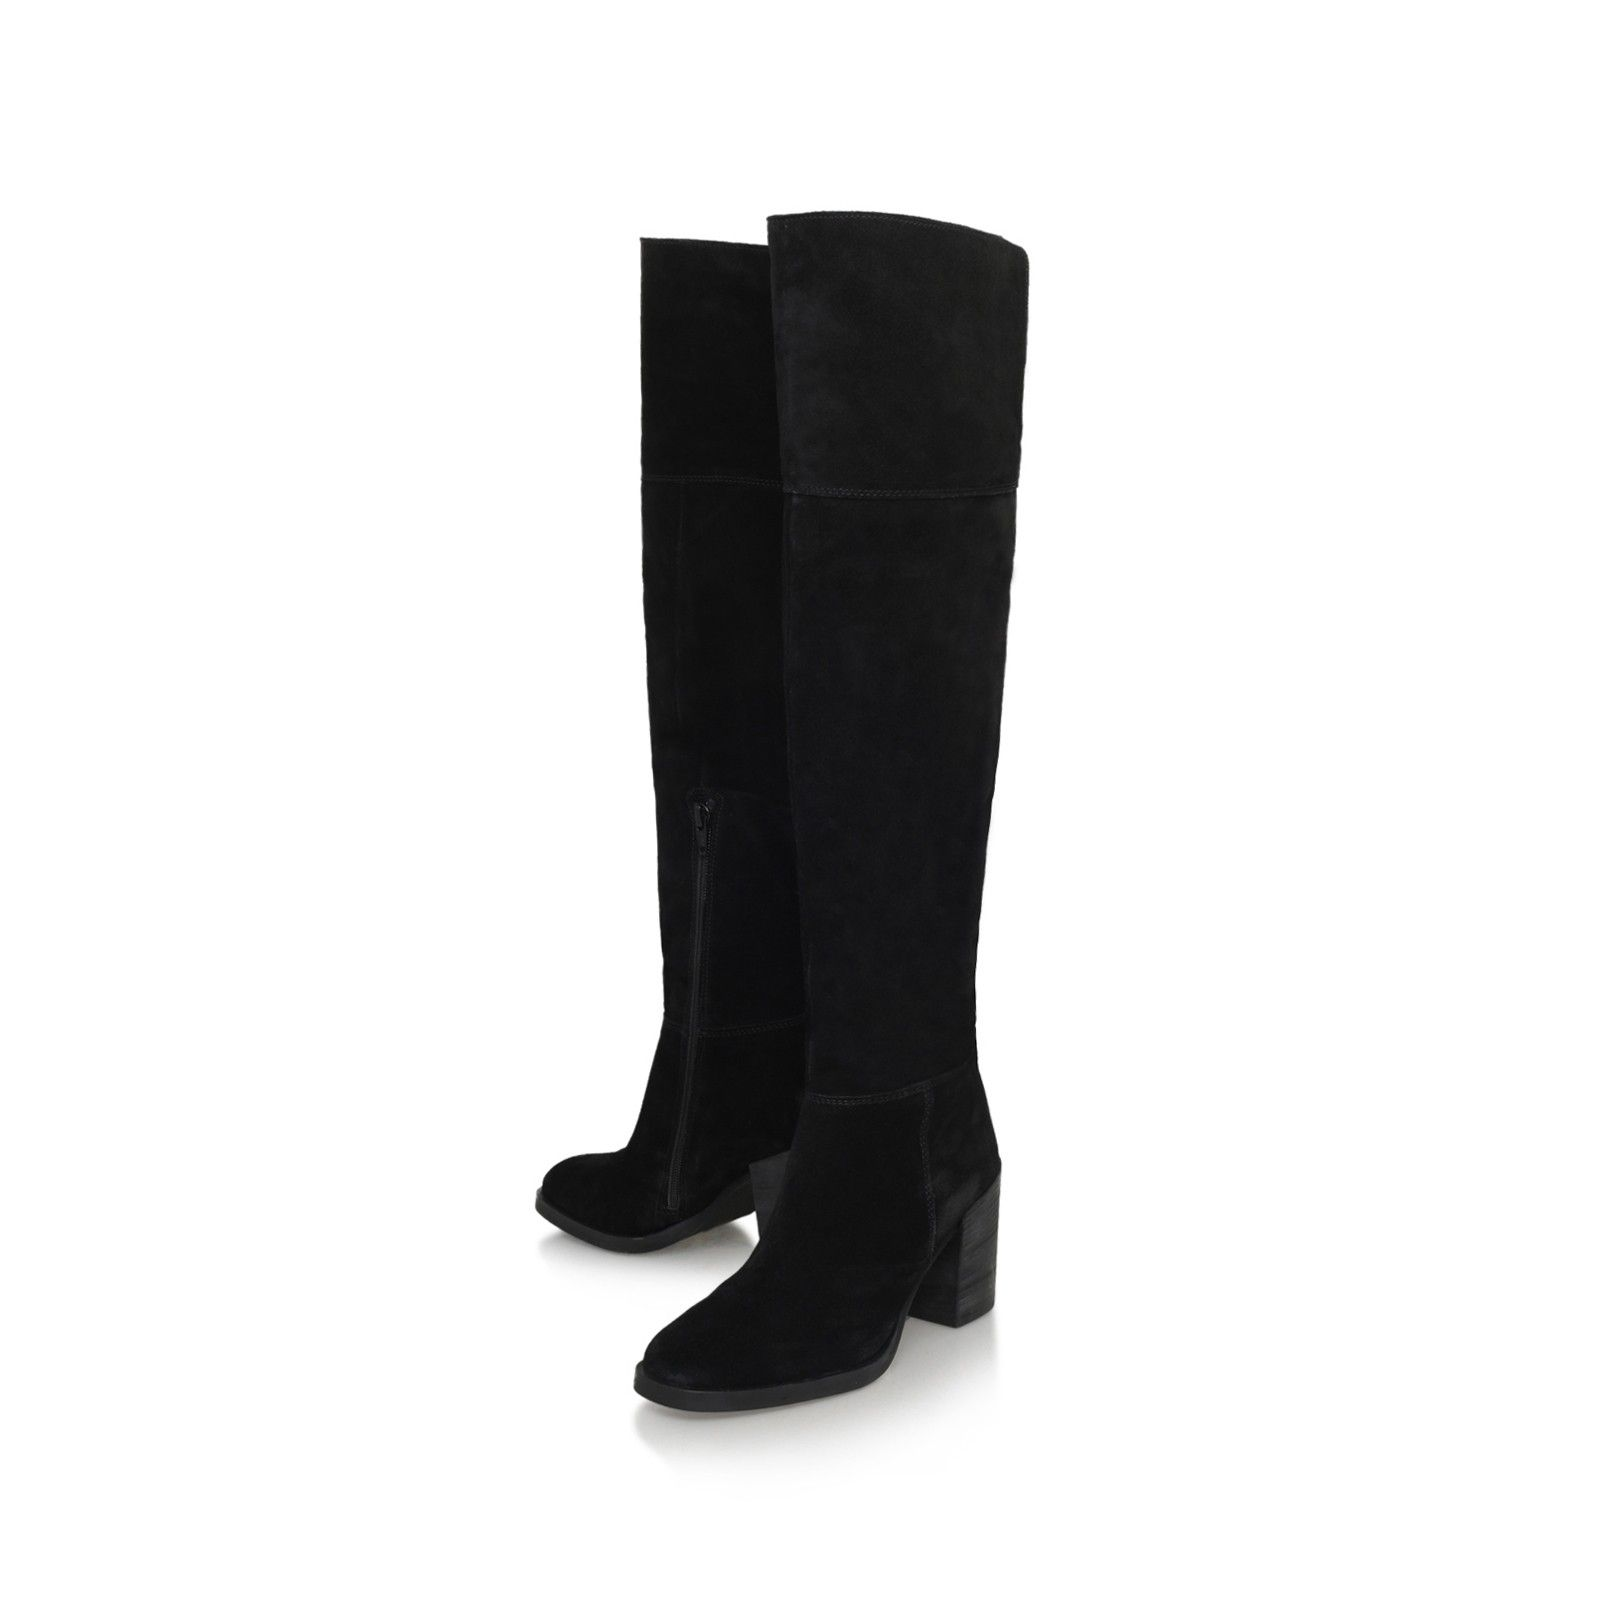 wish black mid heel over the knee boots from Carvela Kurt Geiger